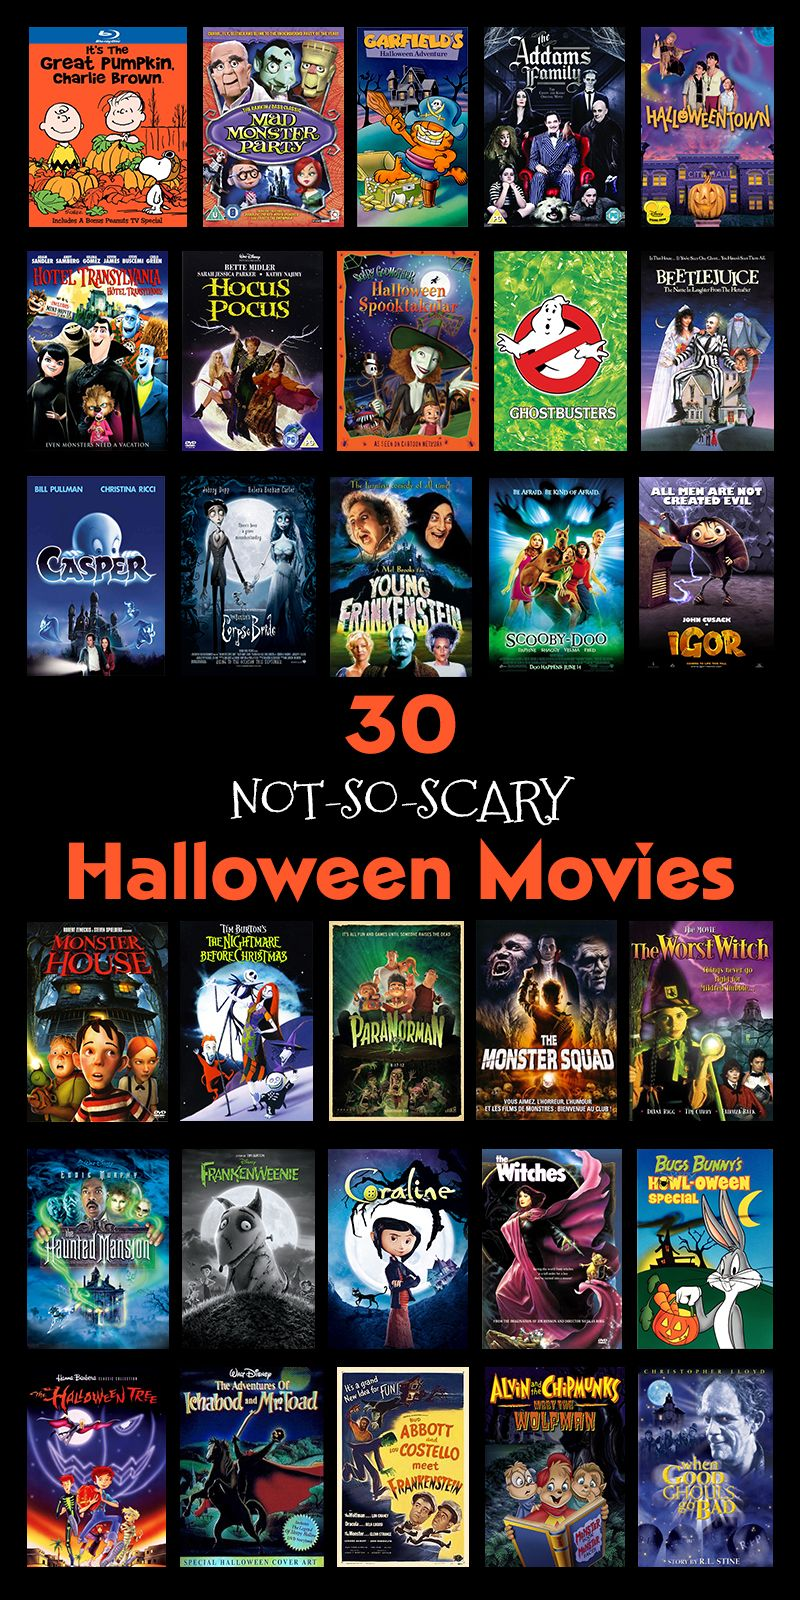 30 Not-So-Scary Halloween Movies | 'Tis The Season | Halloween ...